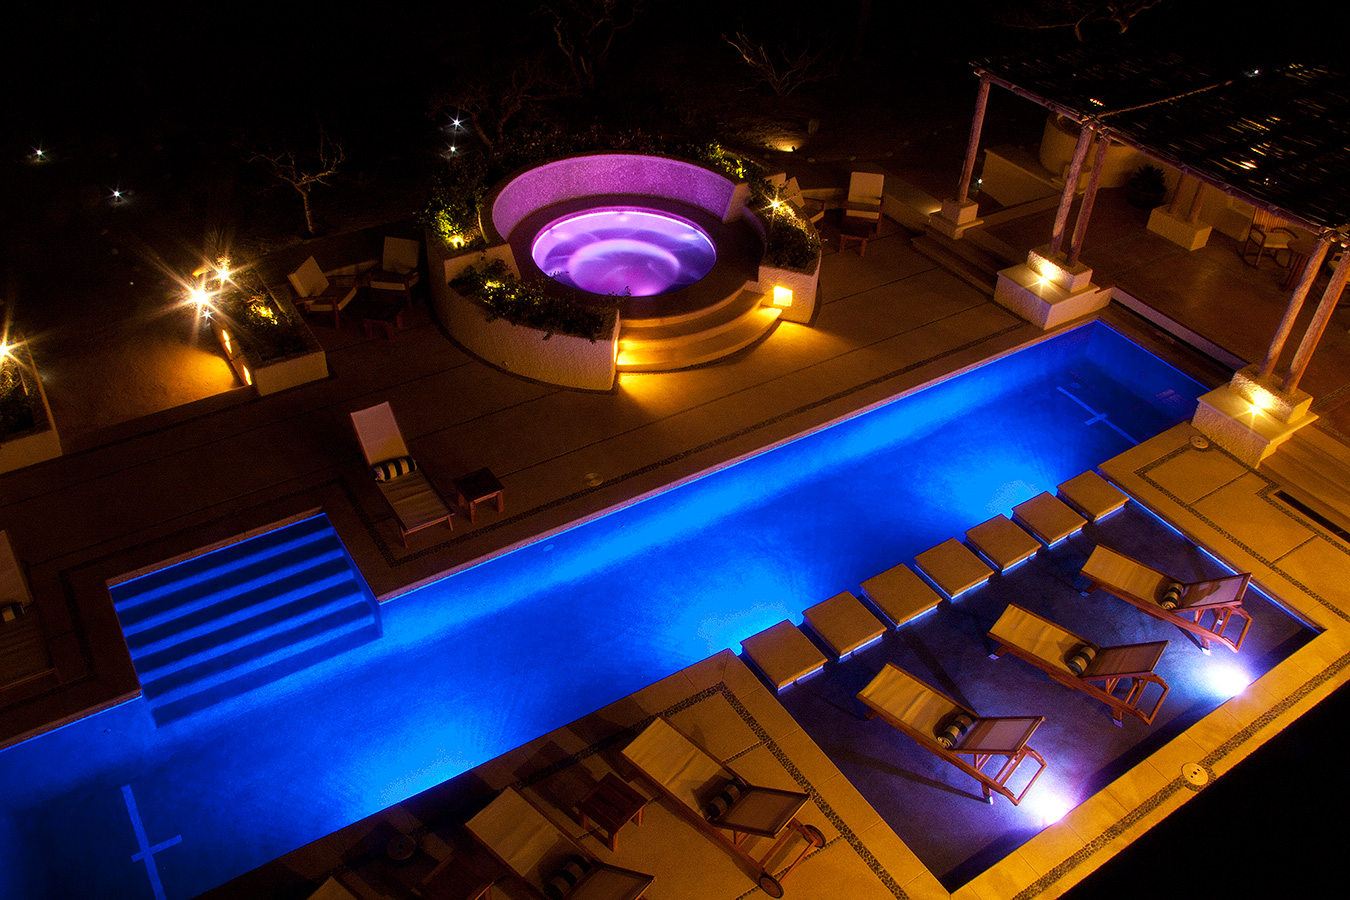 Swimming Pool Hot Tub at Night - Yoga Retreat - Mexico